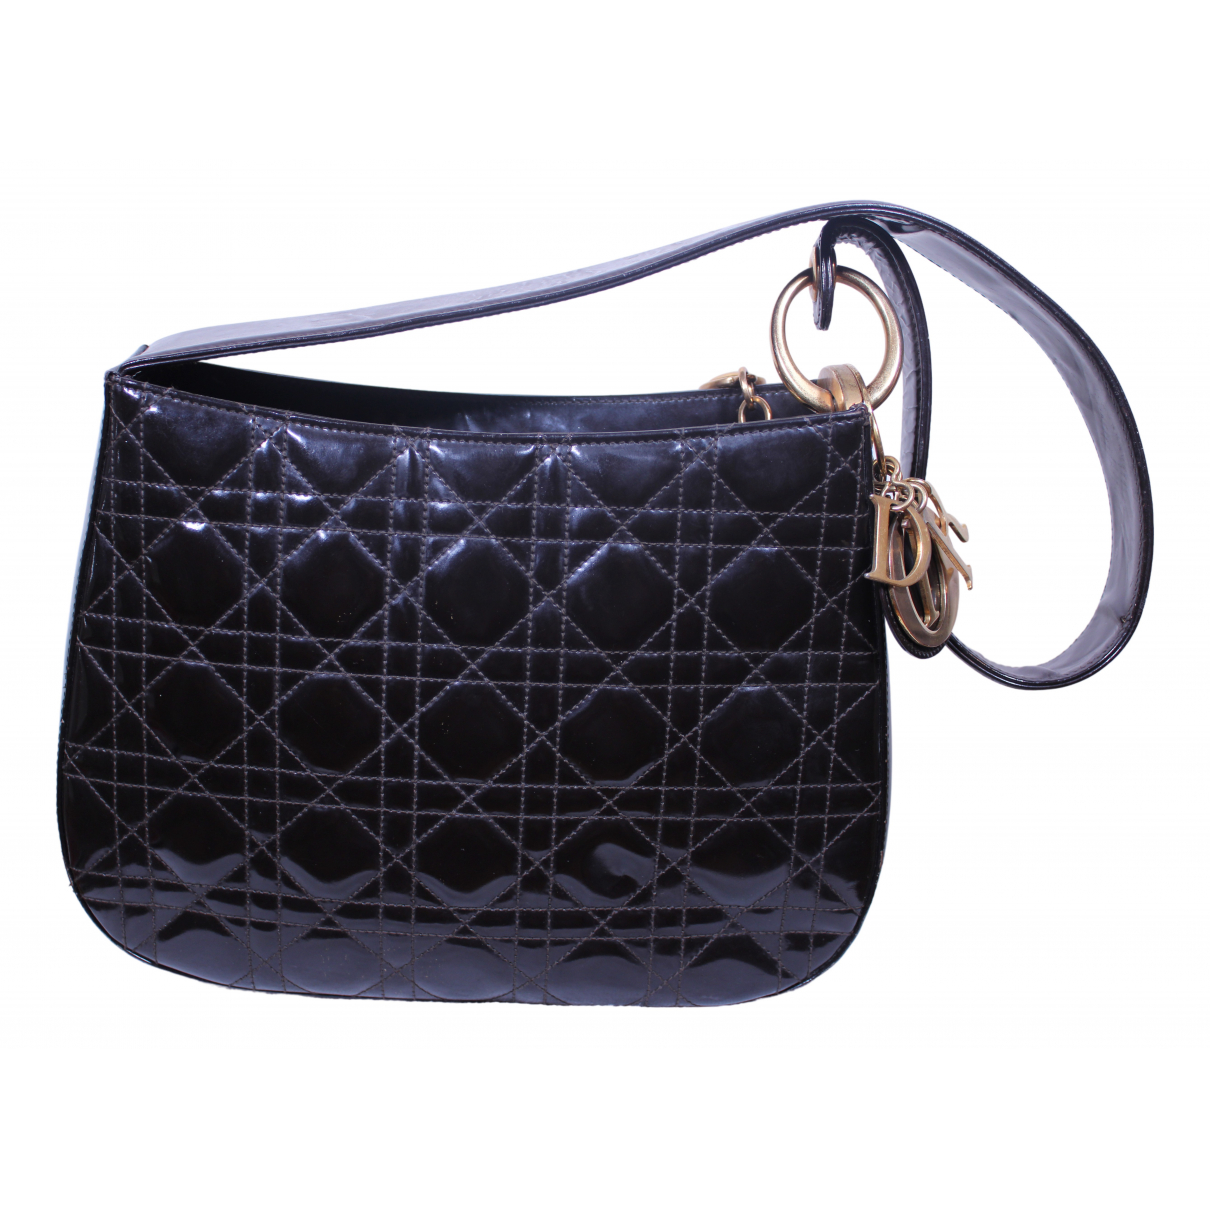 Dior Lady Dior Brown Patent leather handbag for Women \N